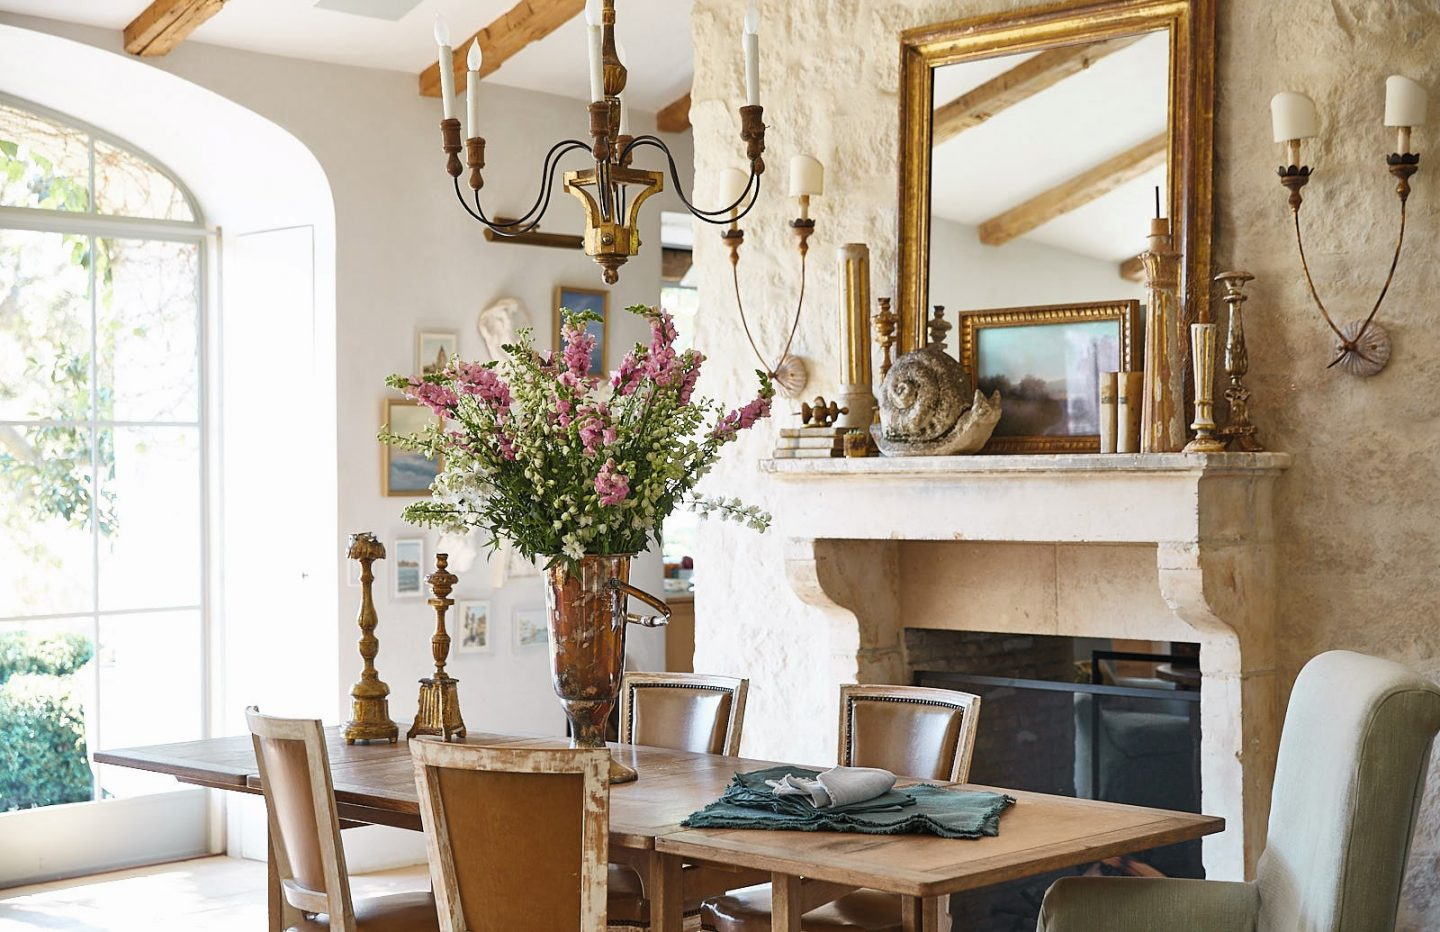 Patina Living photo of dining room with limestone French mantel, French farmhouse chandeliers, plaster walls, and rustic modern farmhouse style. Brooke Giannetti and Steve Giannetti designed the space at Patina Farm. Photo by Victoria Pearson.